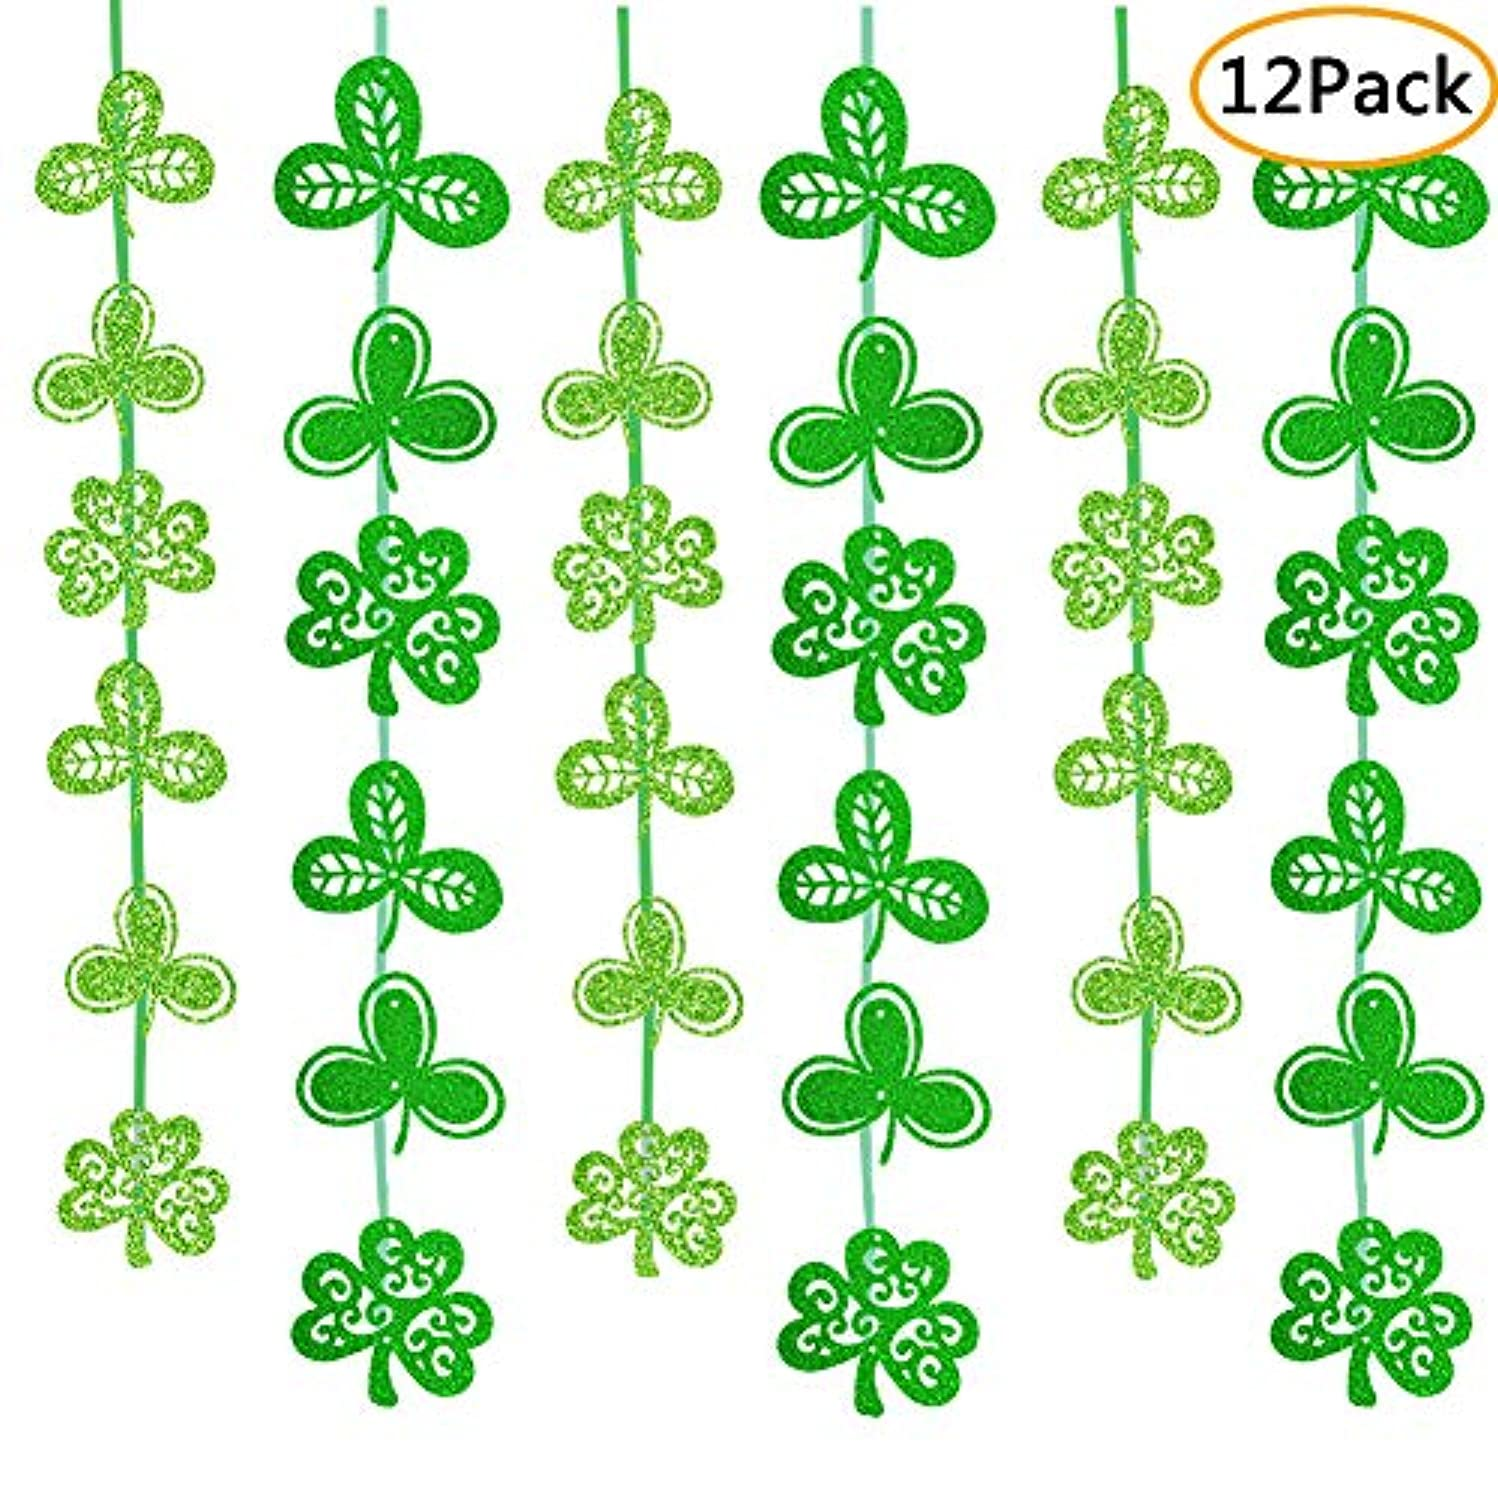 12 Pack St. Patrick's Day Shamrock Decorations-Irish Clover Hanging Ornaments Garland For Lucky St. Patrick's Day Supplies